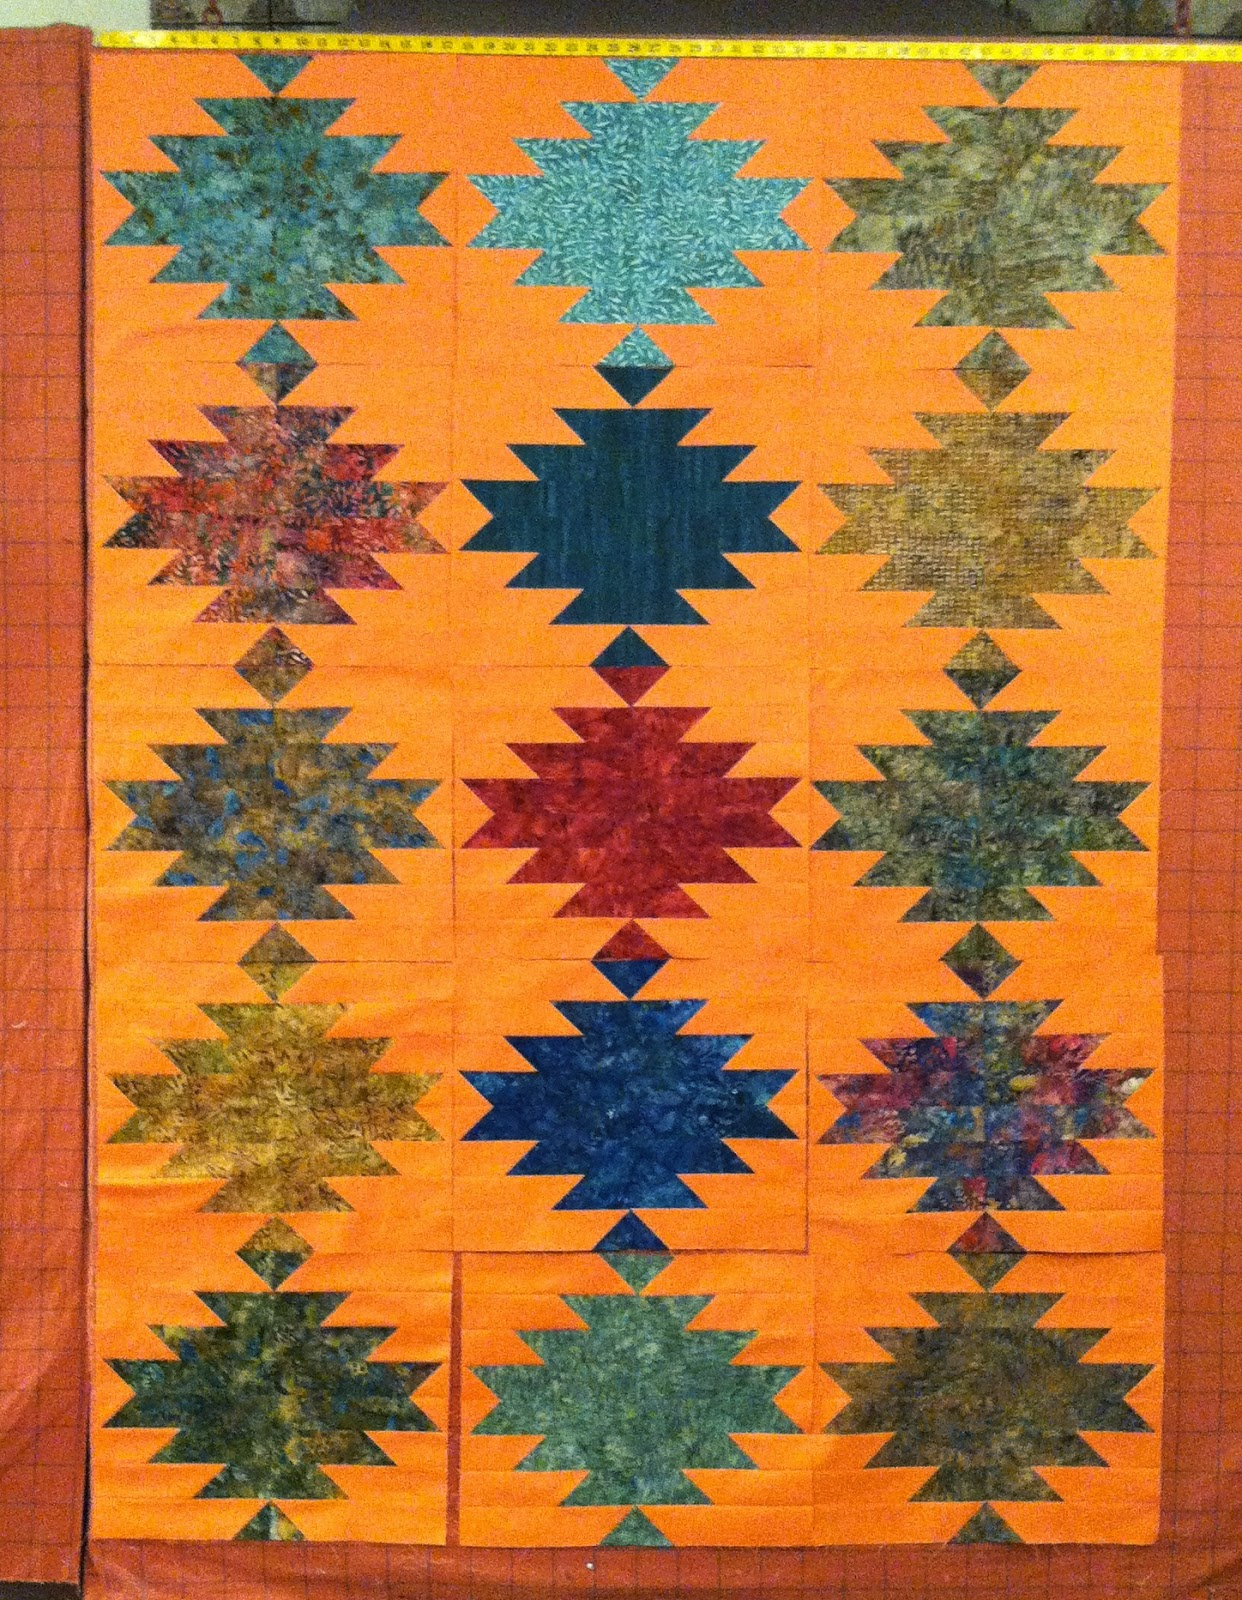 Sonoma Quilt - Cut Loose Press Pattern - I love the Southwest look of this quilt!